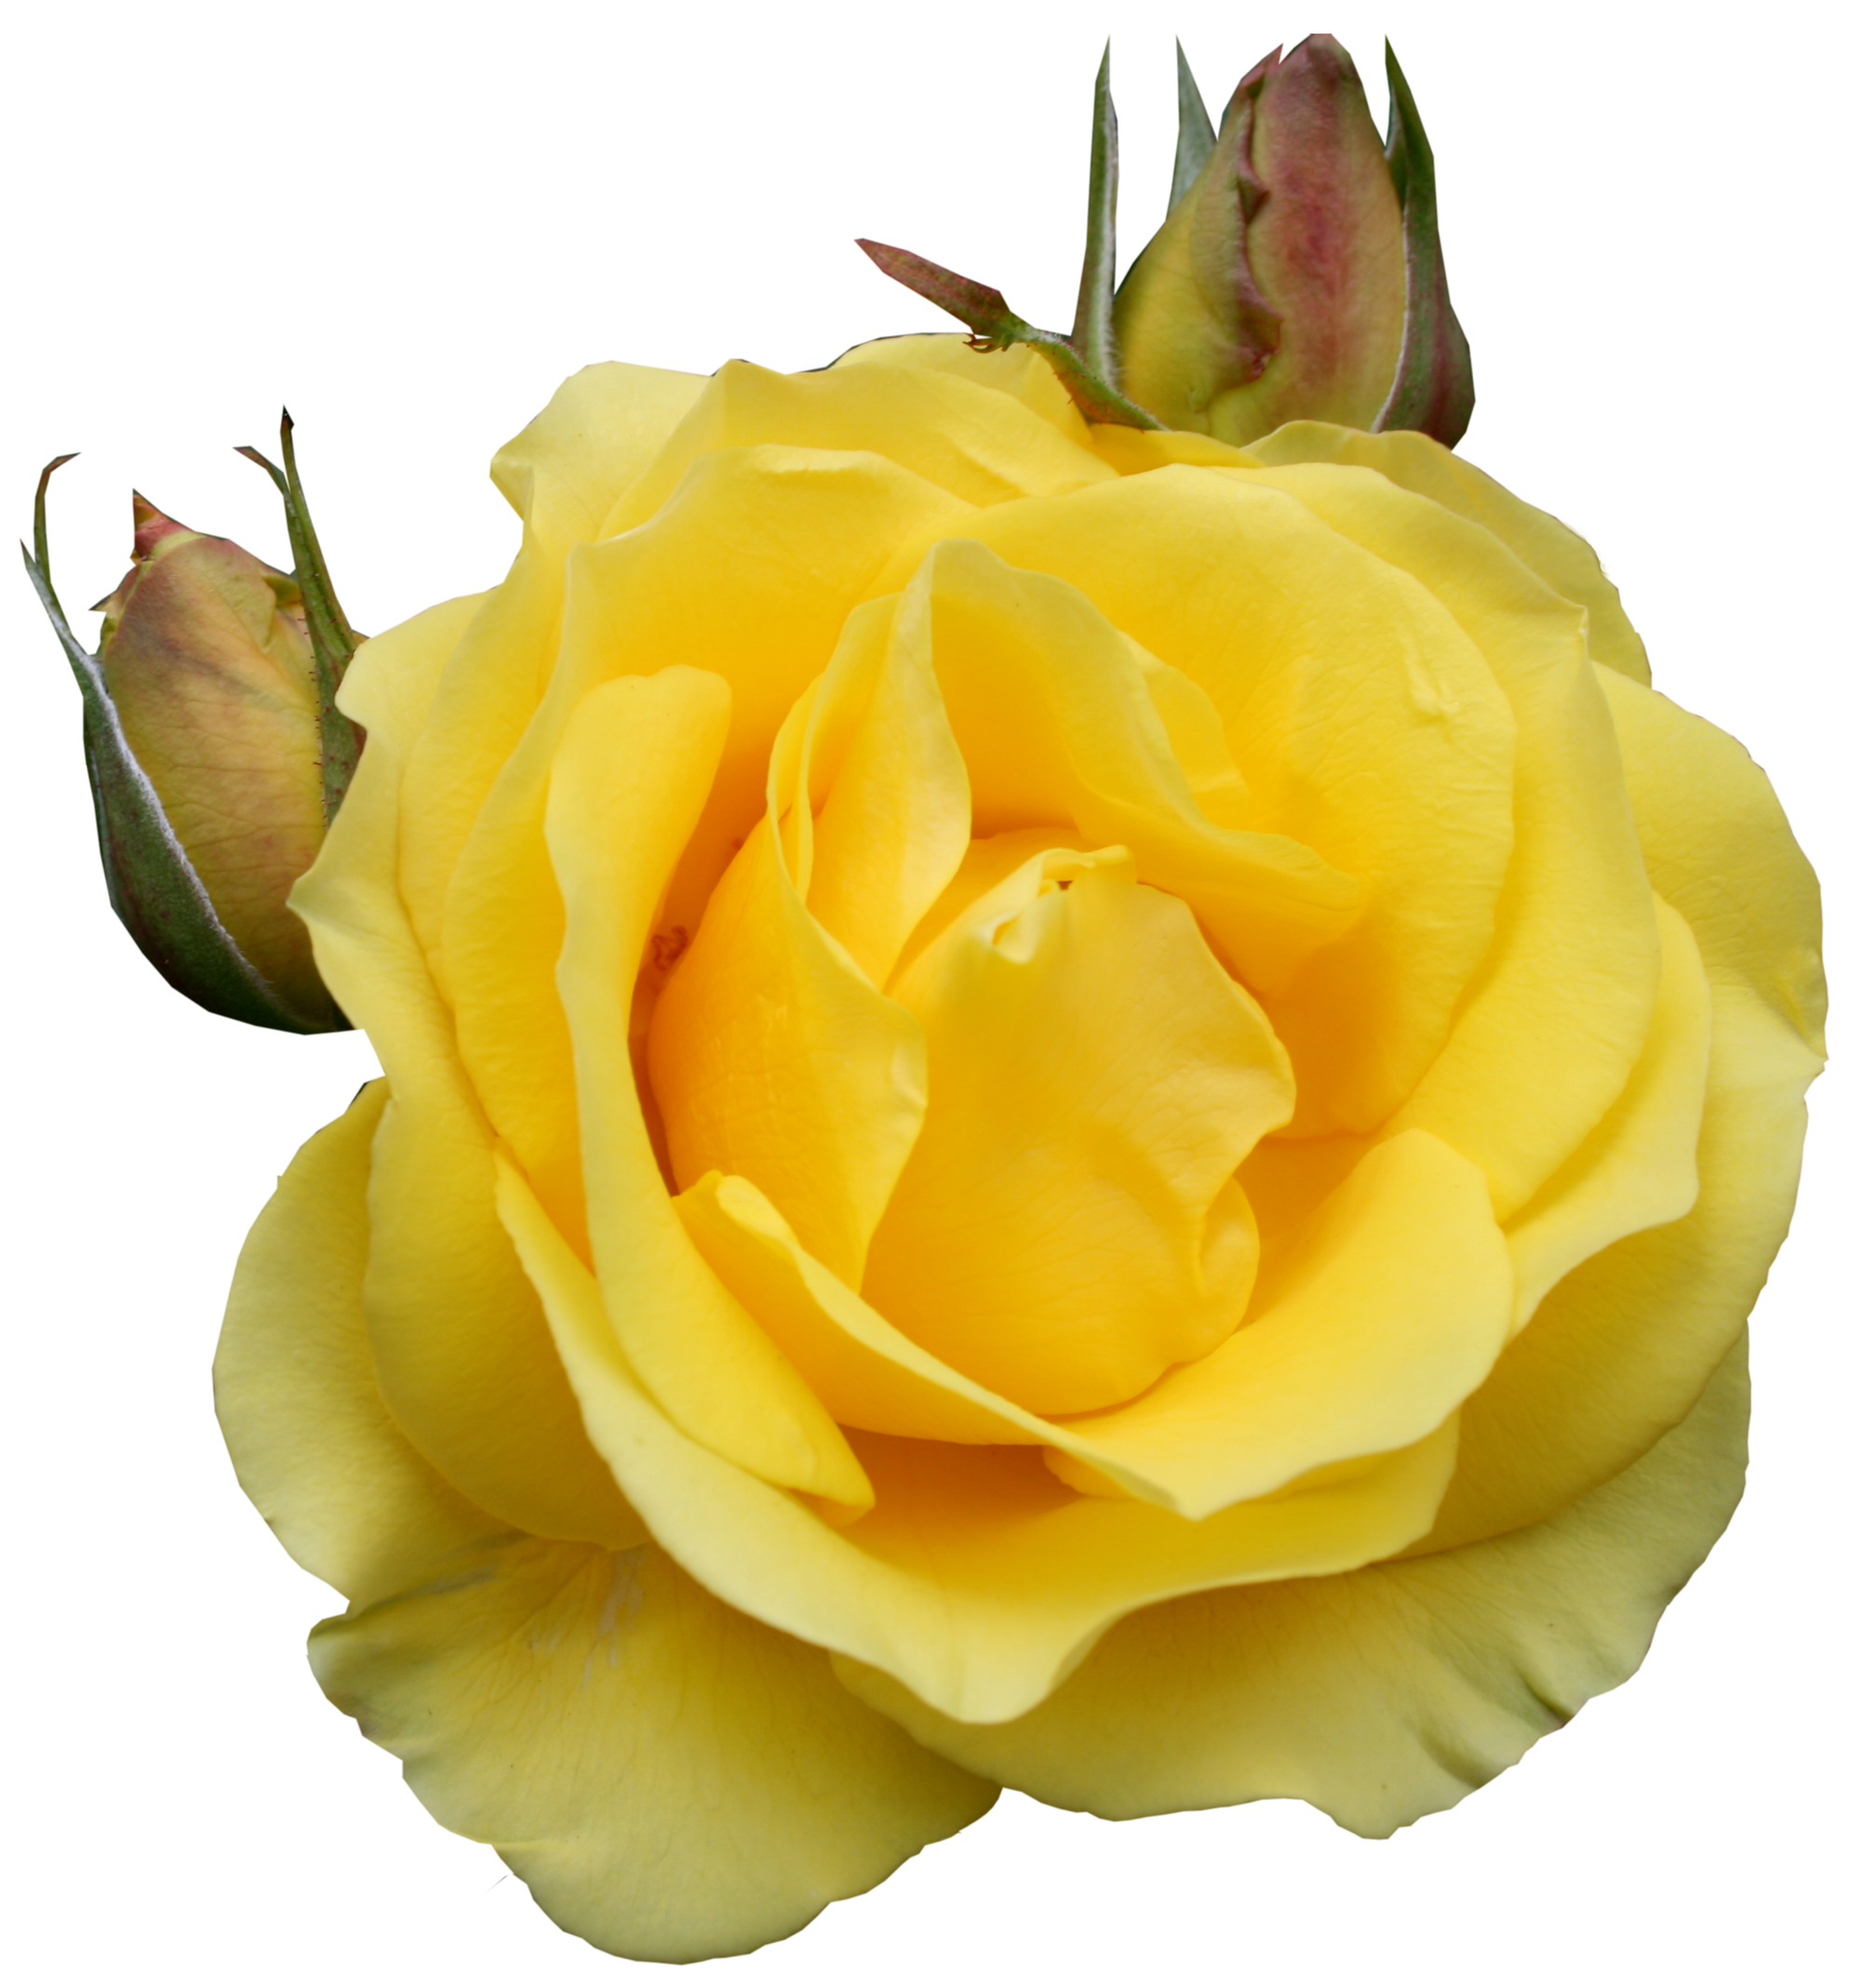 Rose clipart yellow rose. Png gallery yopriceville high